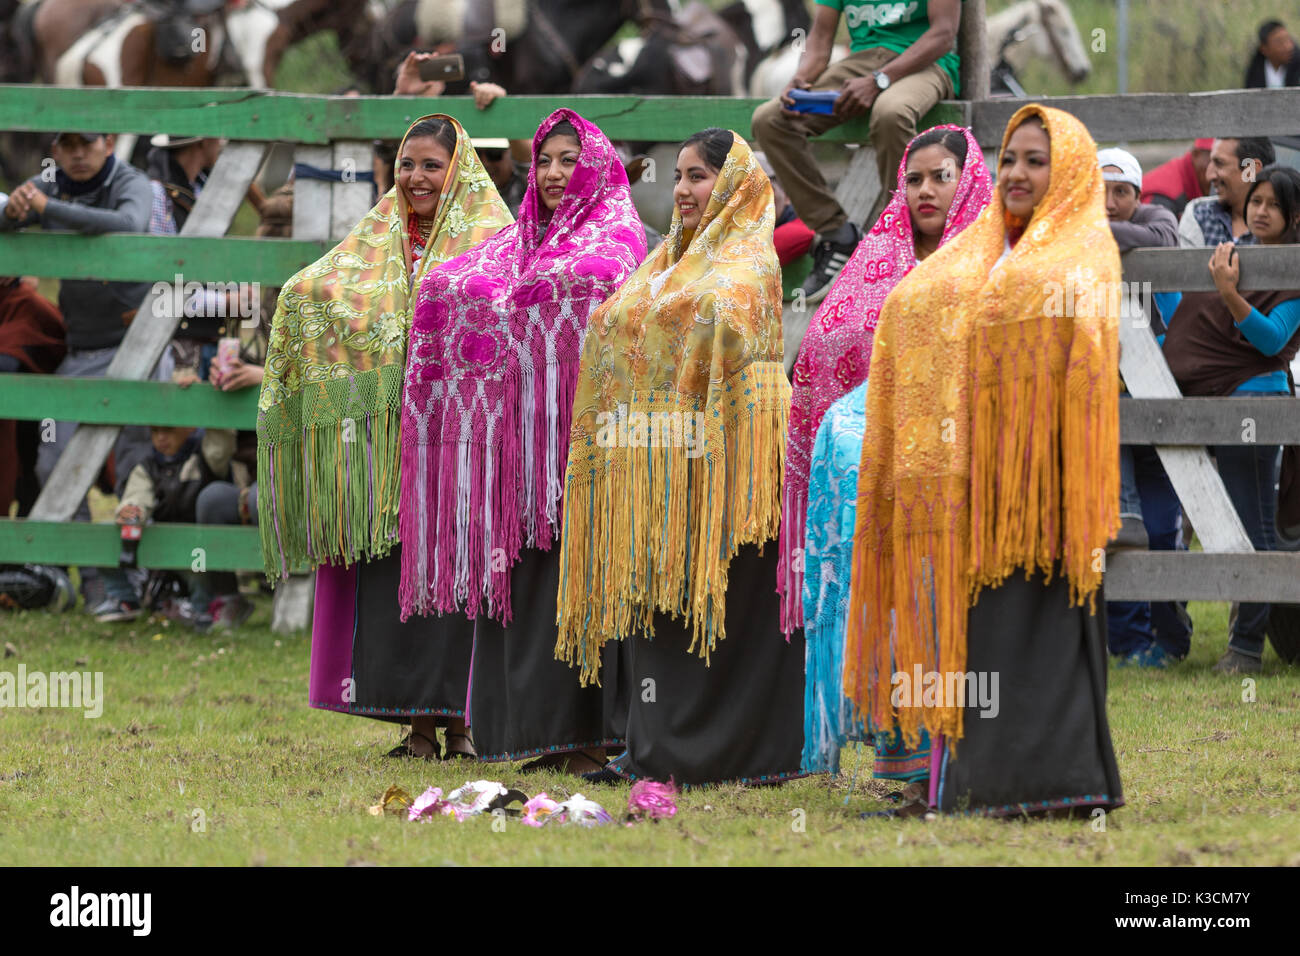 May 27, 2017 Sangolqui, Ecuador: indigenous female dancers performing at the opening of a rural rodeo - Stock Image